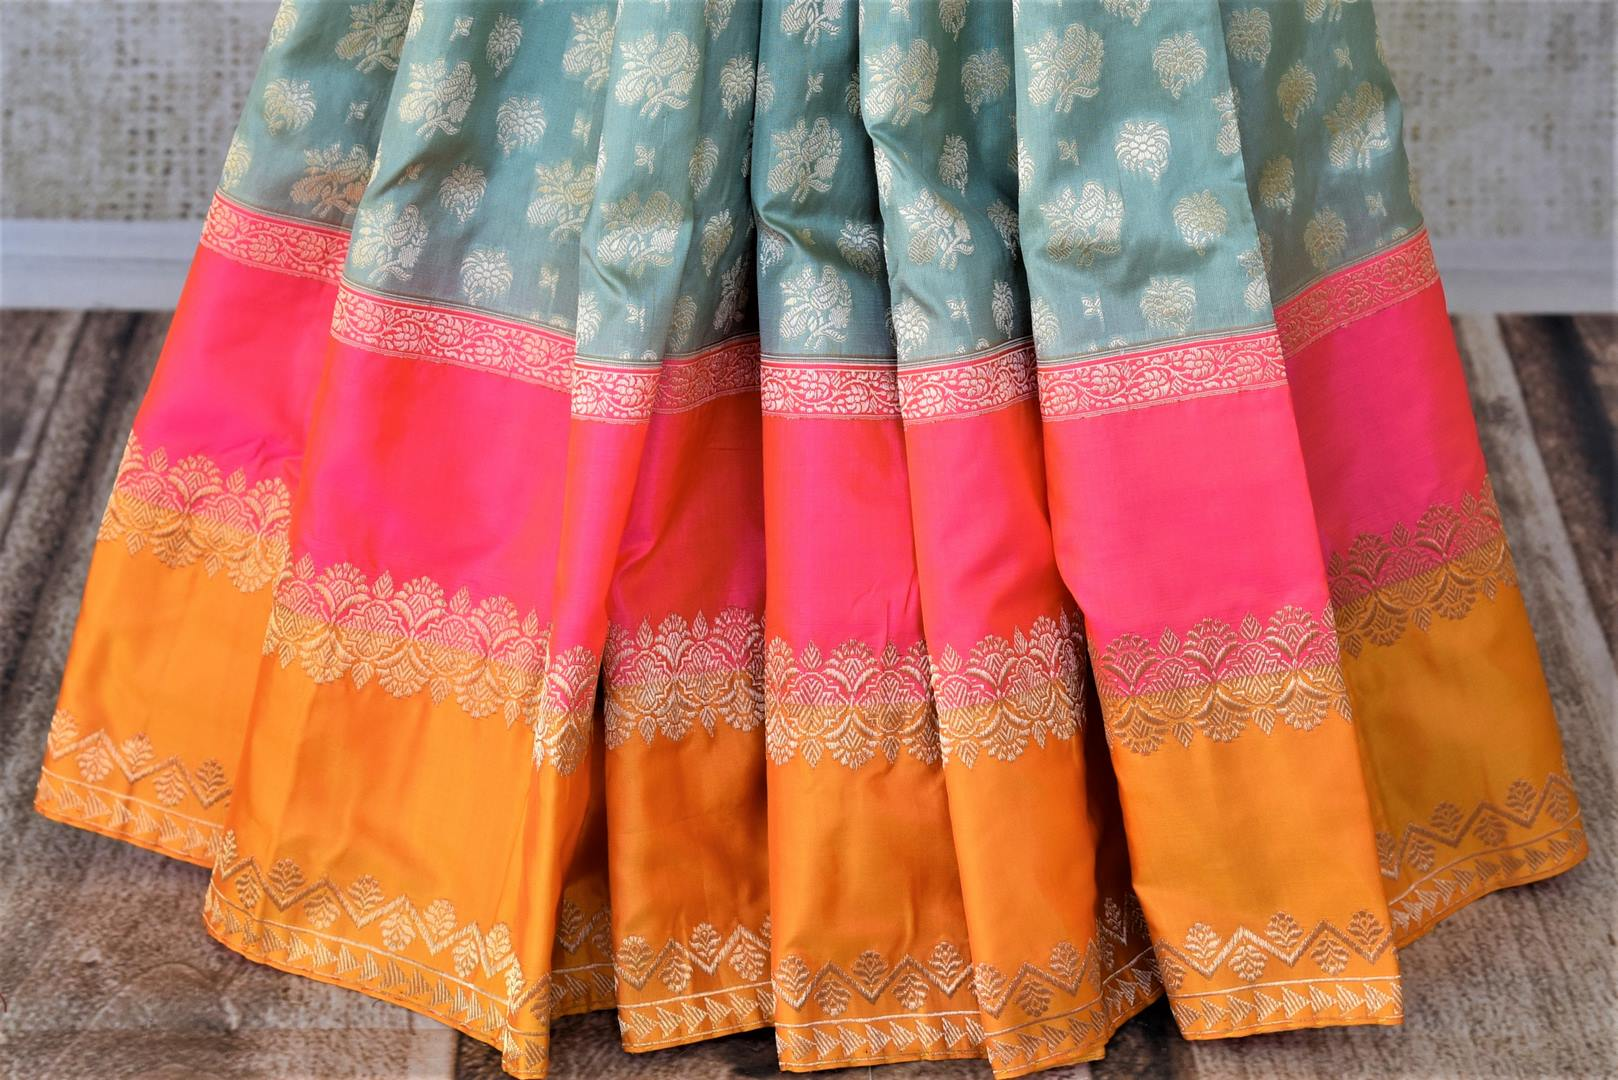 Buy beautiful sea green zari work Banarasi silk saree online in USA with pink and orange border. For Indian women in USA, Pure Elegance Indian fashion store brings an exquisite collection Banarasi sarees, Banarasi silk sarees, tussar sarees, zari work sarees, pure silk sarees all under one roof. Shop online now.-pleats